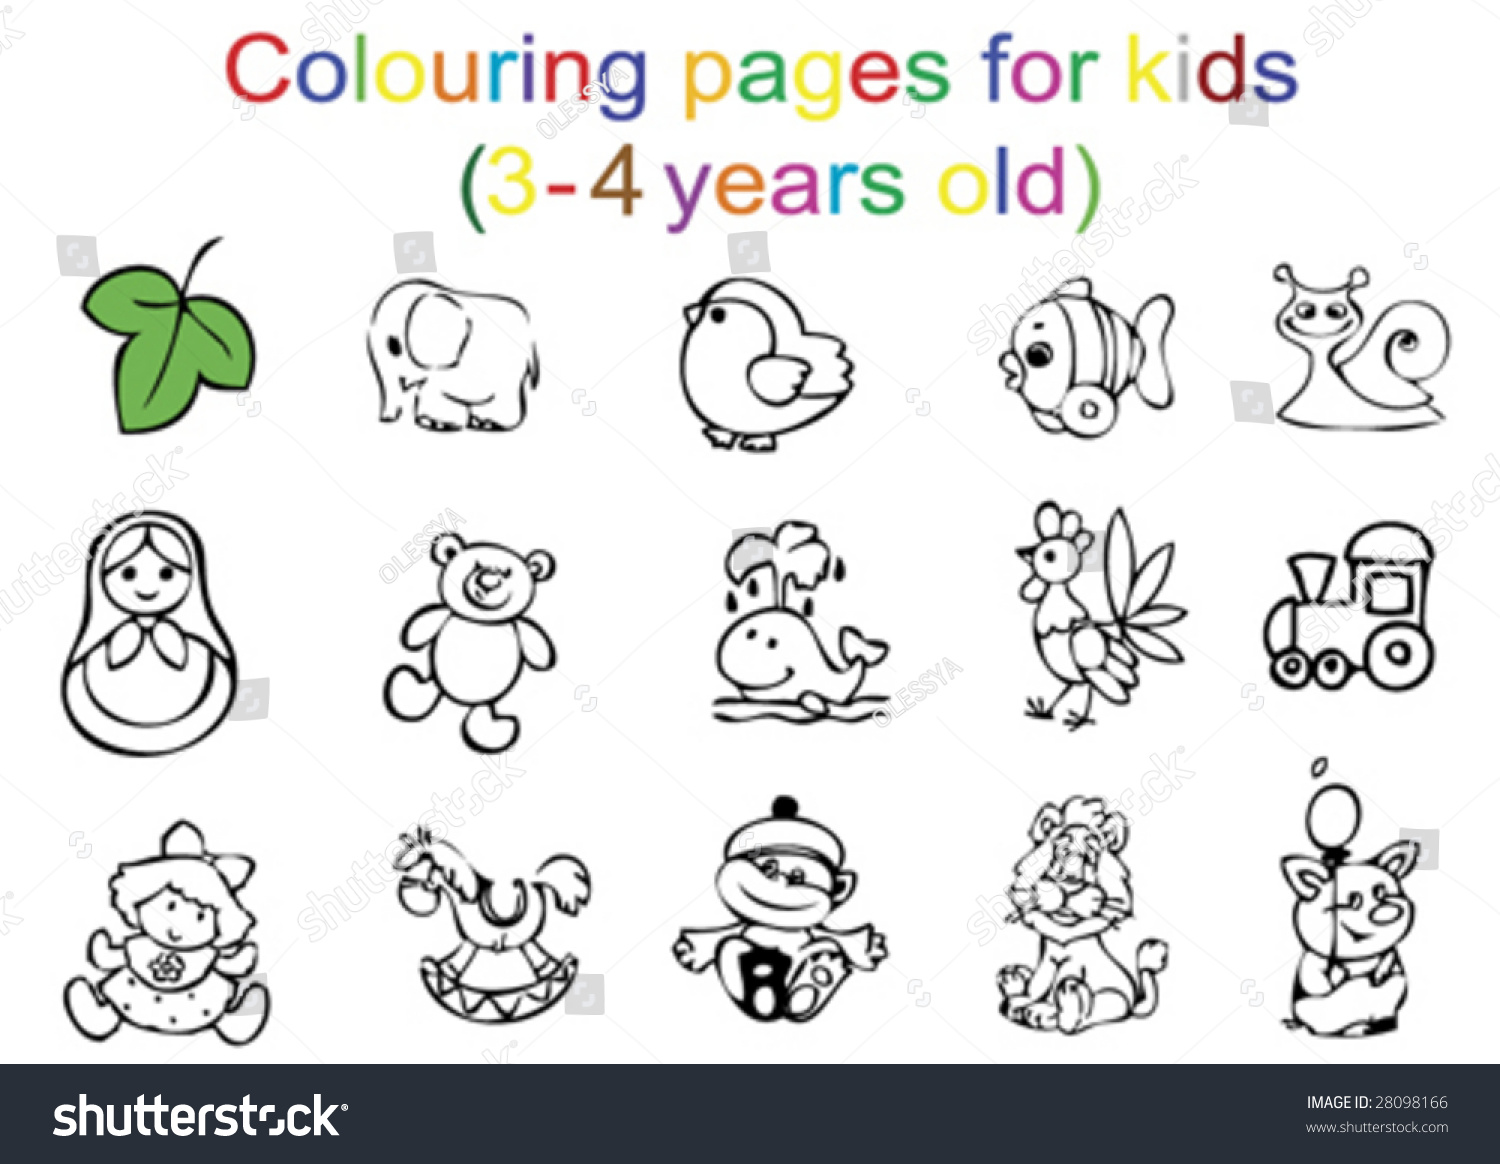 coloring pages for 4 year olds Colouring Pages Kids 34 Years Old Stock Vector (Royalty Free  coloring pages for 4 year olds